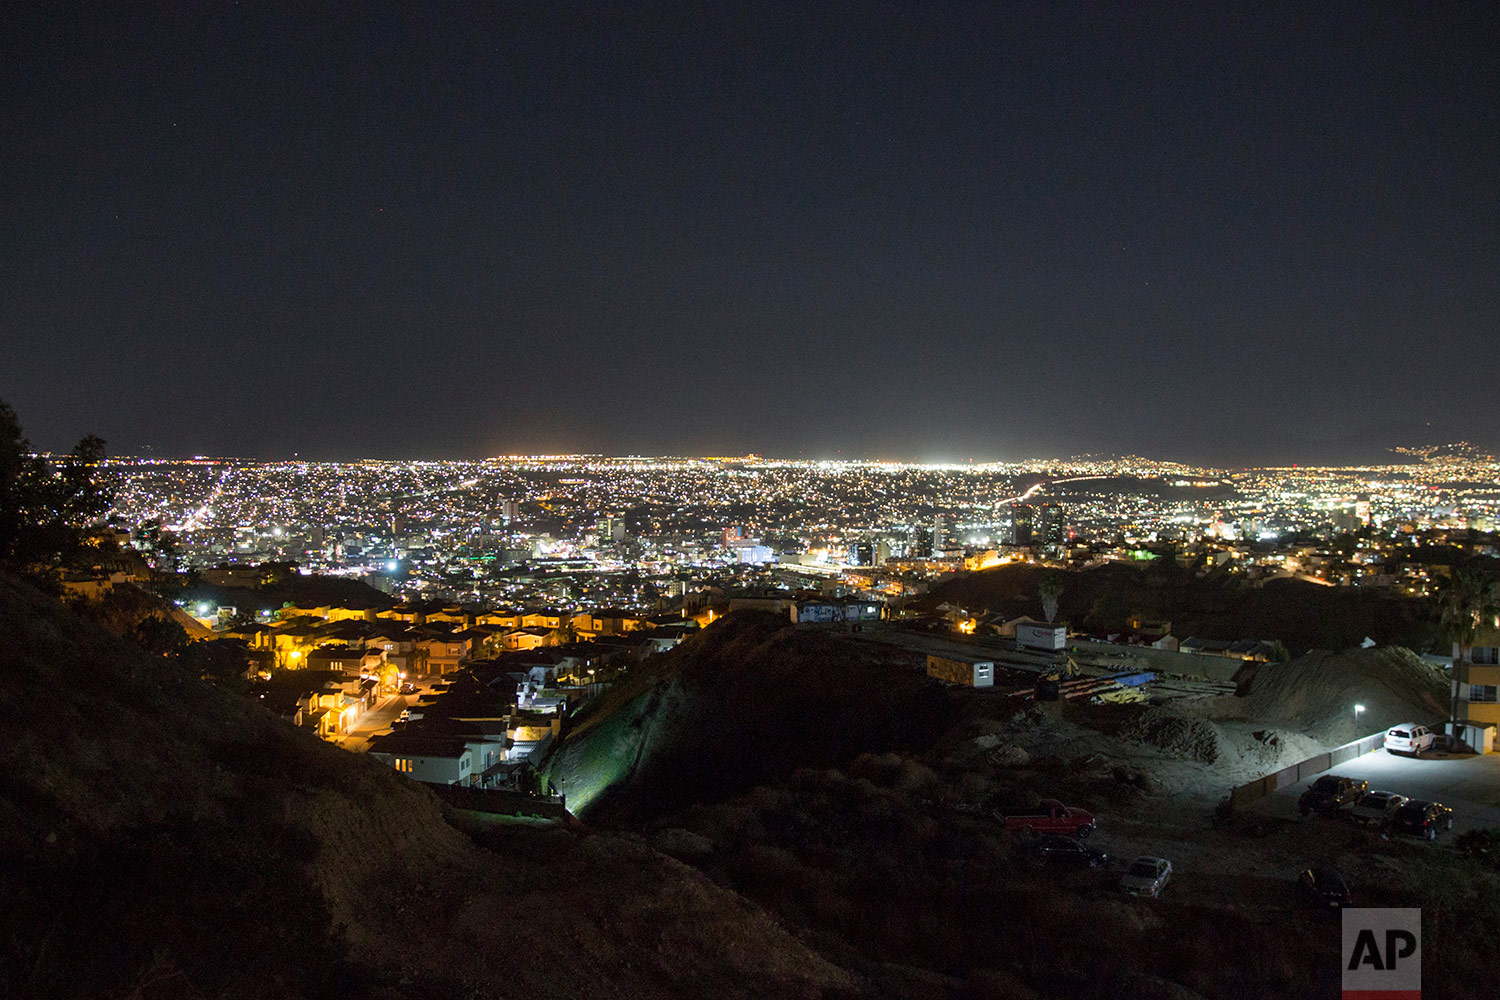 Lights shine over the city of Tijuana, Mexico, Feb. 21, 2018. San Diego's office towers can be seen in the distance. (AP Photo/Emilio Espejel)